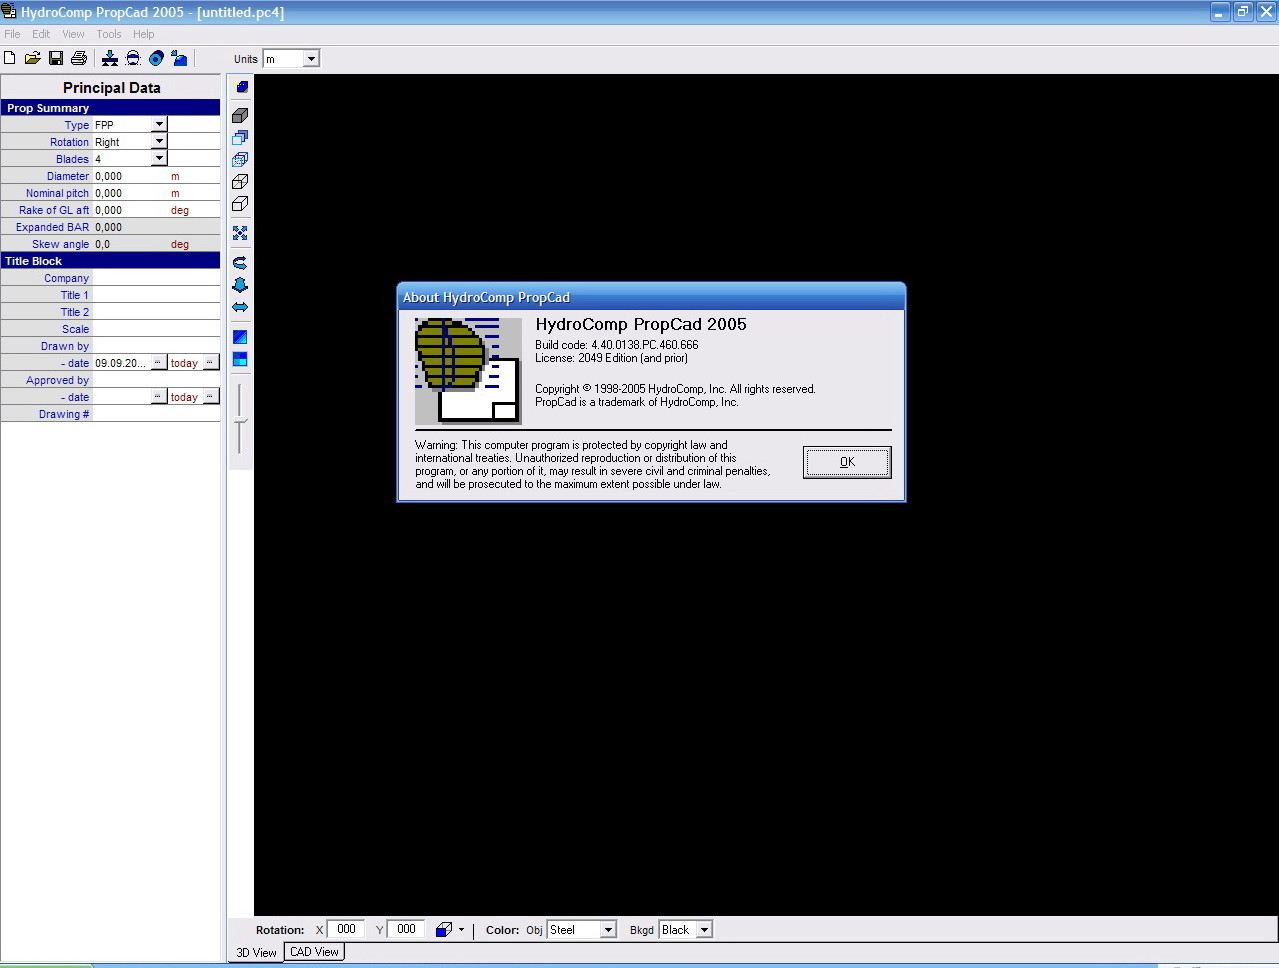 Working with PropCad 2005 full license